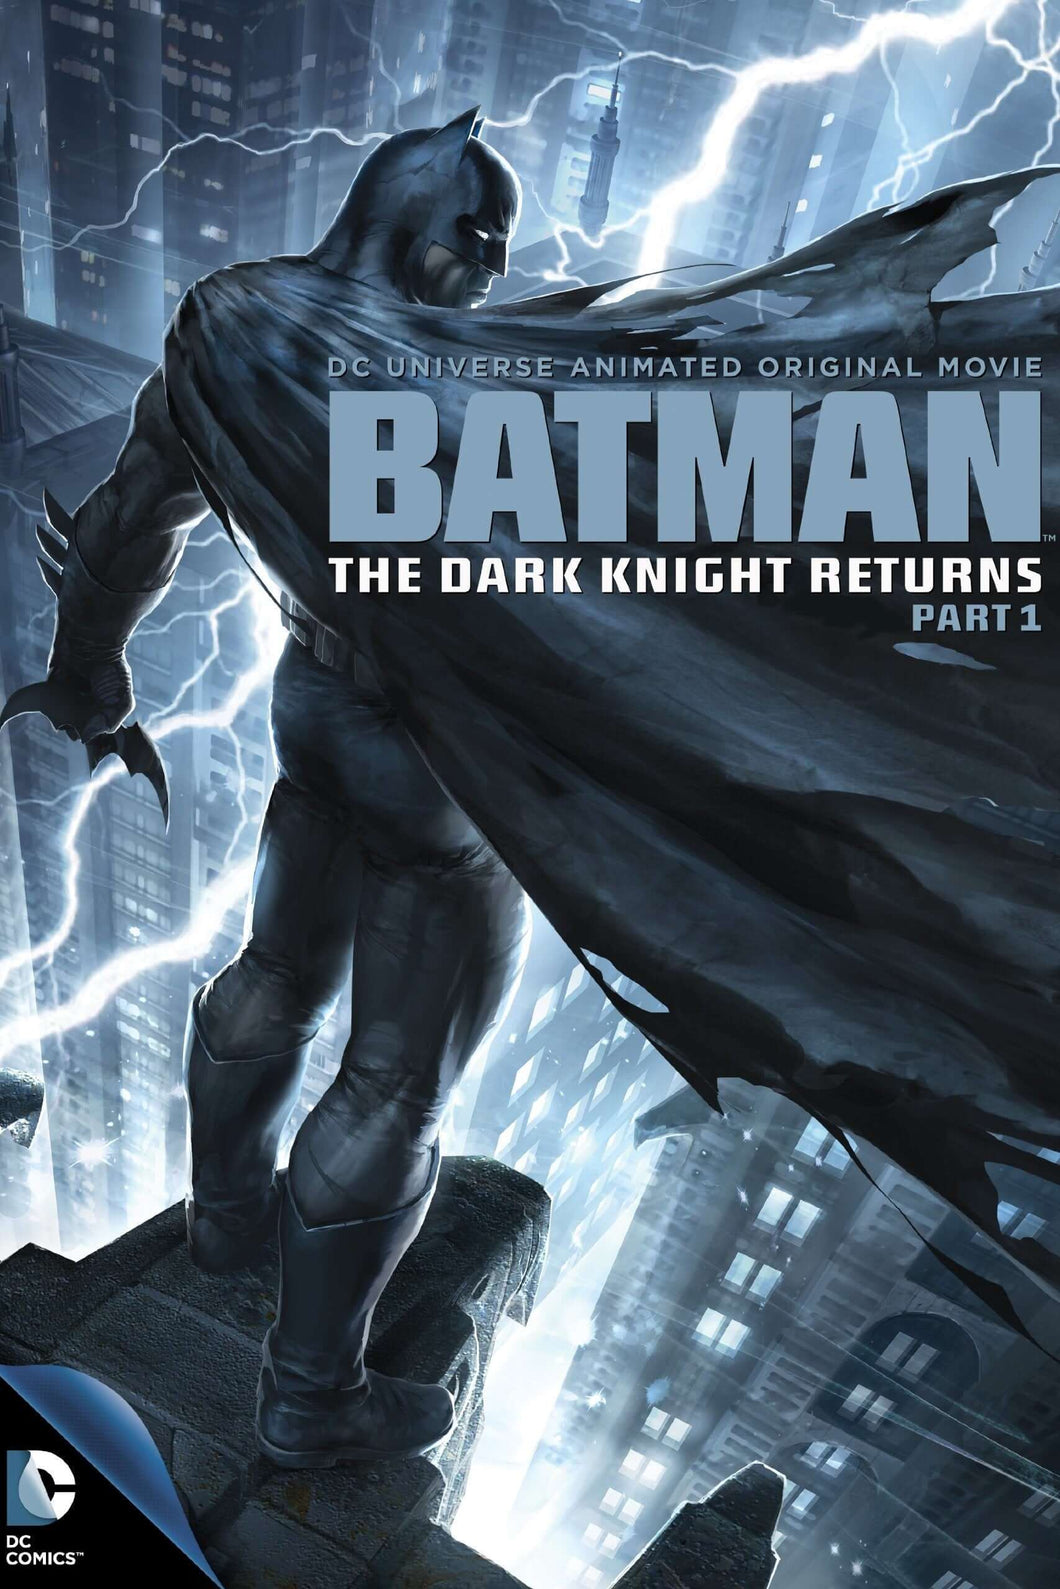 Batman: The Dark Knight Returns, Part 1 | HD Movies Anywhere Code Ports to Vudu, iTunes, GP - Movie Sometimes